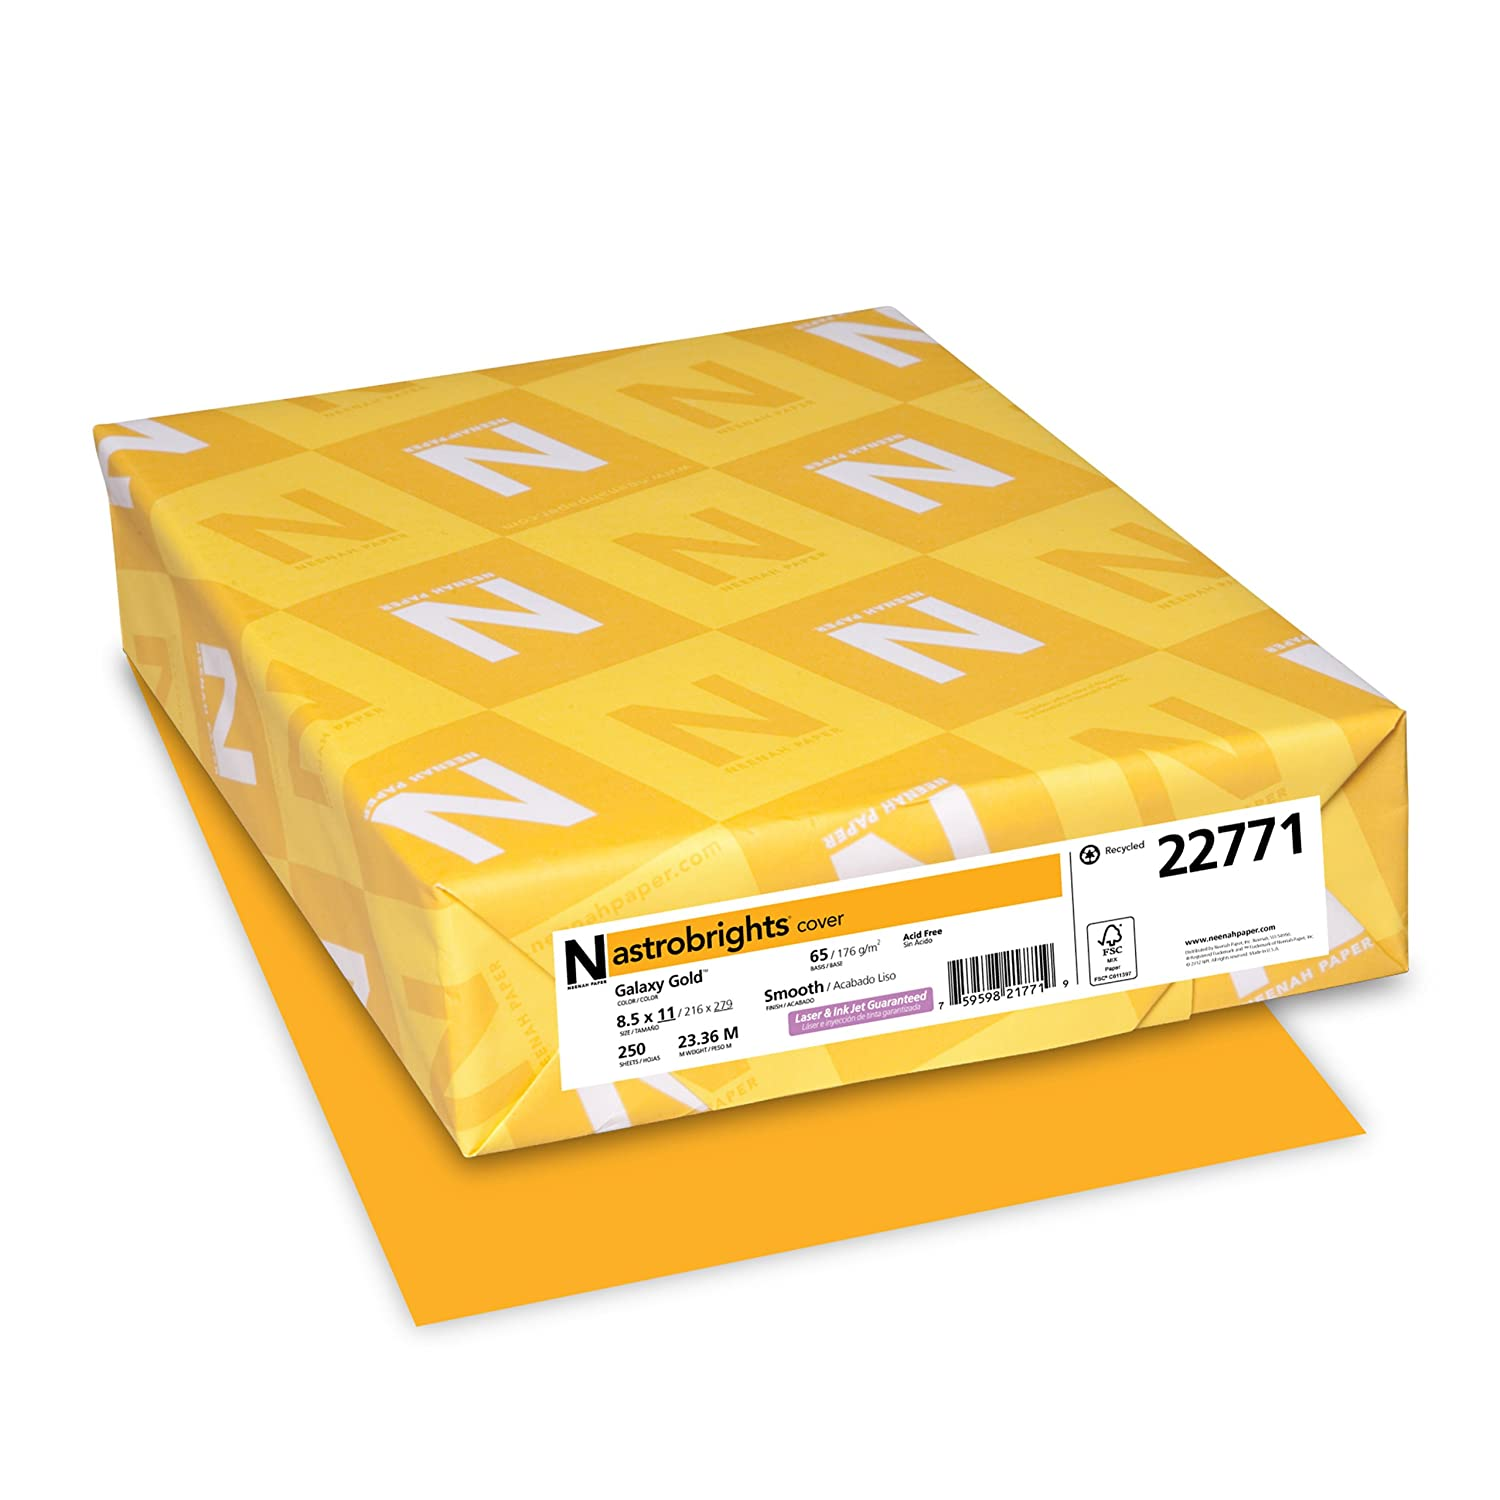 Gold color cardstock paper - Amazon Com Astrobrights Color Paper 8 5 X 11 65 Lb Galaxy Gold 250 Sheets Cardstock Papers Office Products